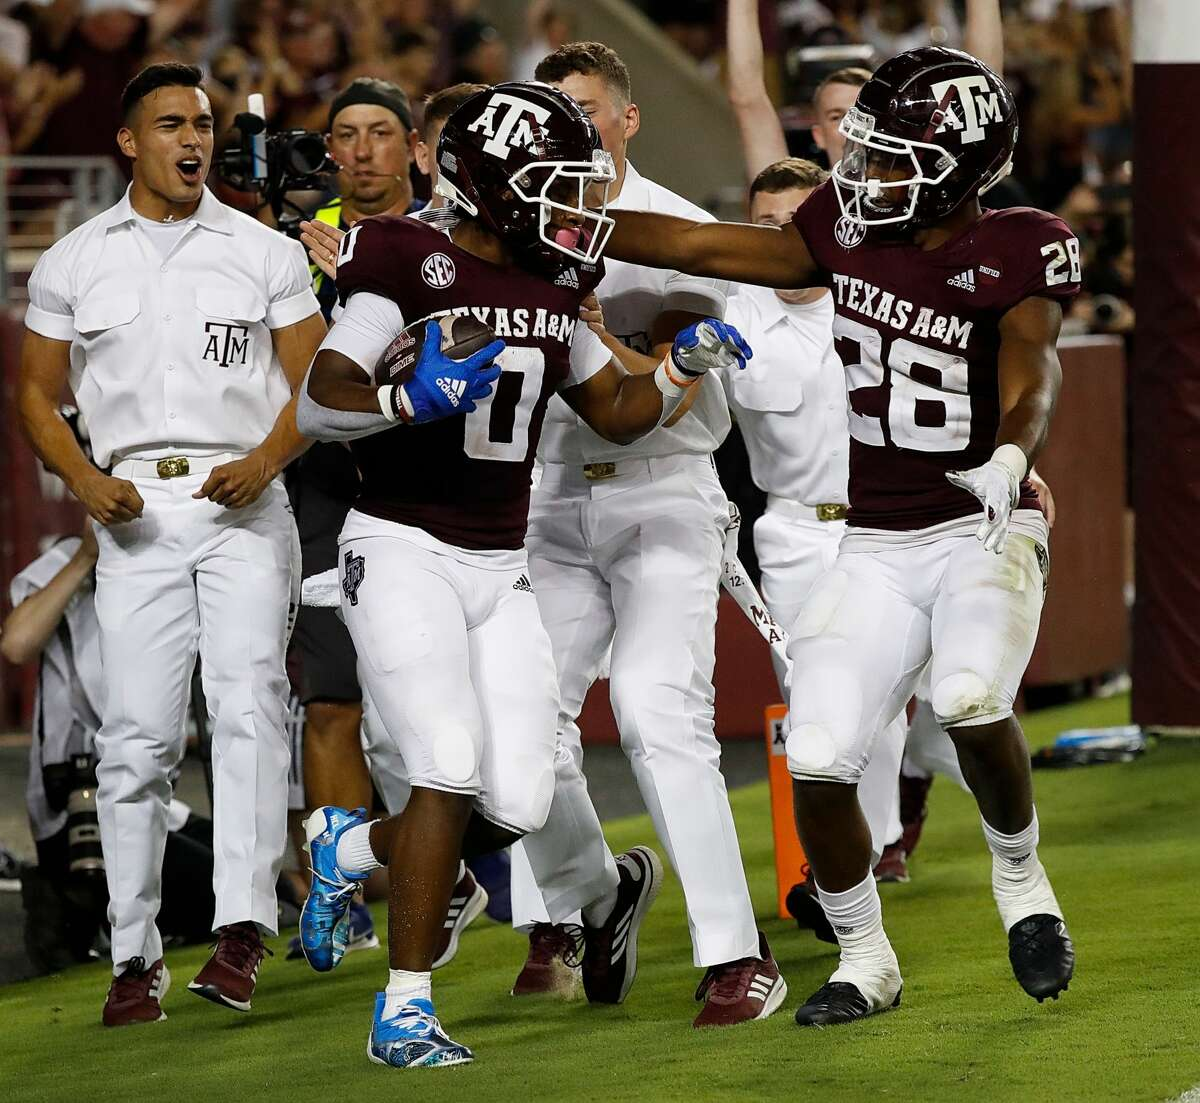 COLLEGE STATION, TEXAS - OCTOBER 09: Ainias Smith #0 of the Texas A&M Aggies celebrates with Isaiah Spiller #28 after catching a 6 yard pass for a touchdown in the first half against the Alabama Crimson Tide at Kyle Field on October 09, 2021 in College Station, Texas. (Photo by Bob Levey/Getty Images)